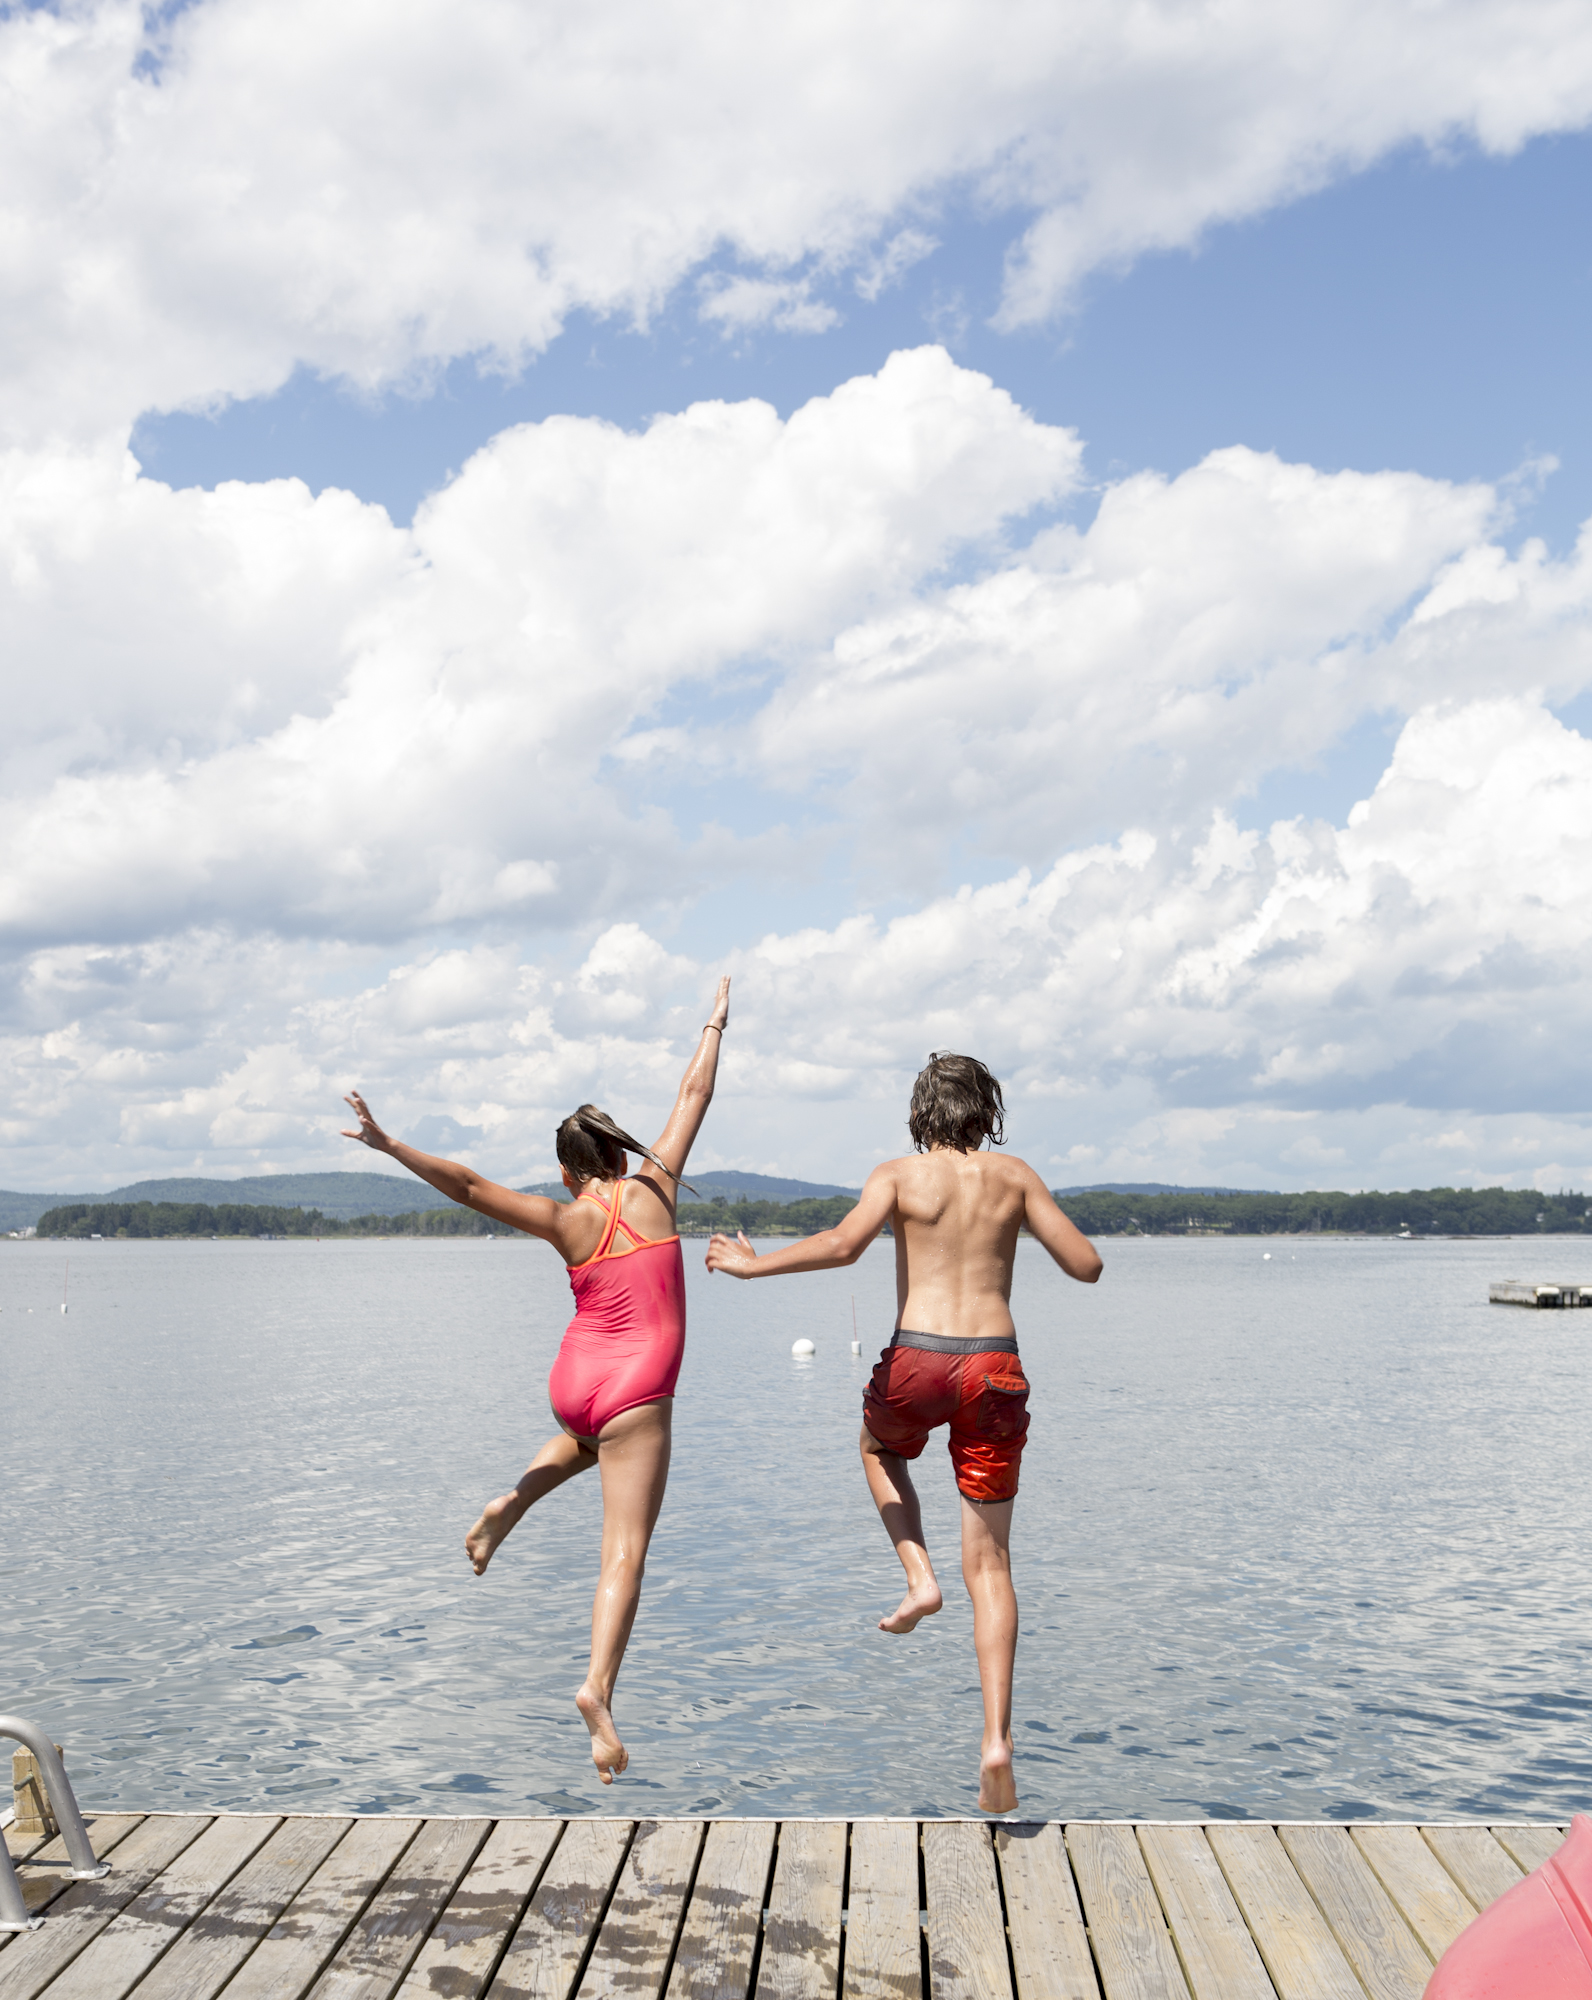 Kids jumping off a dock in summer on an island in Isleboro, Maine with brightly colored swimsuits